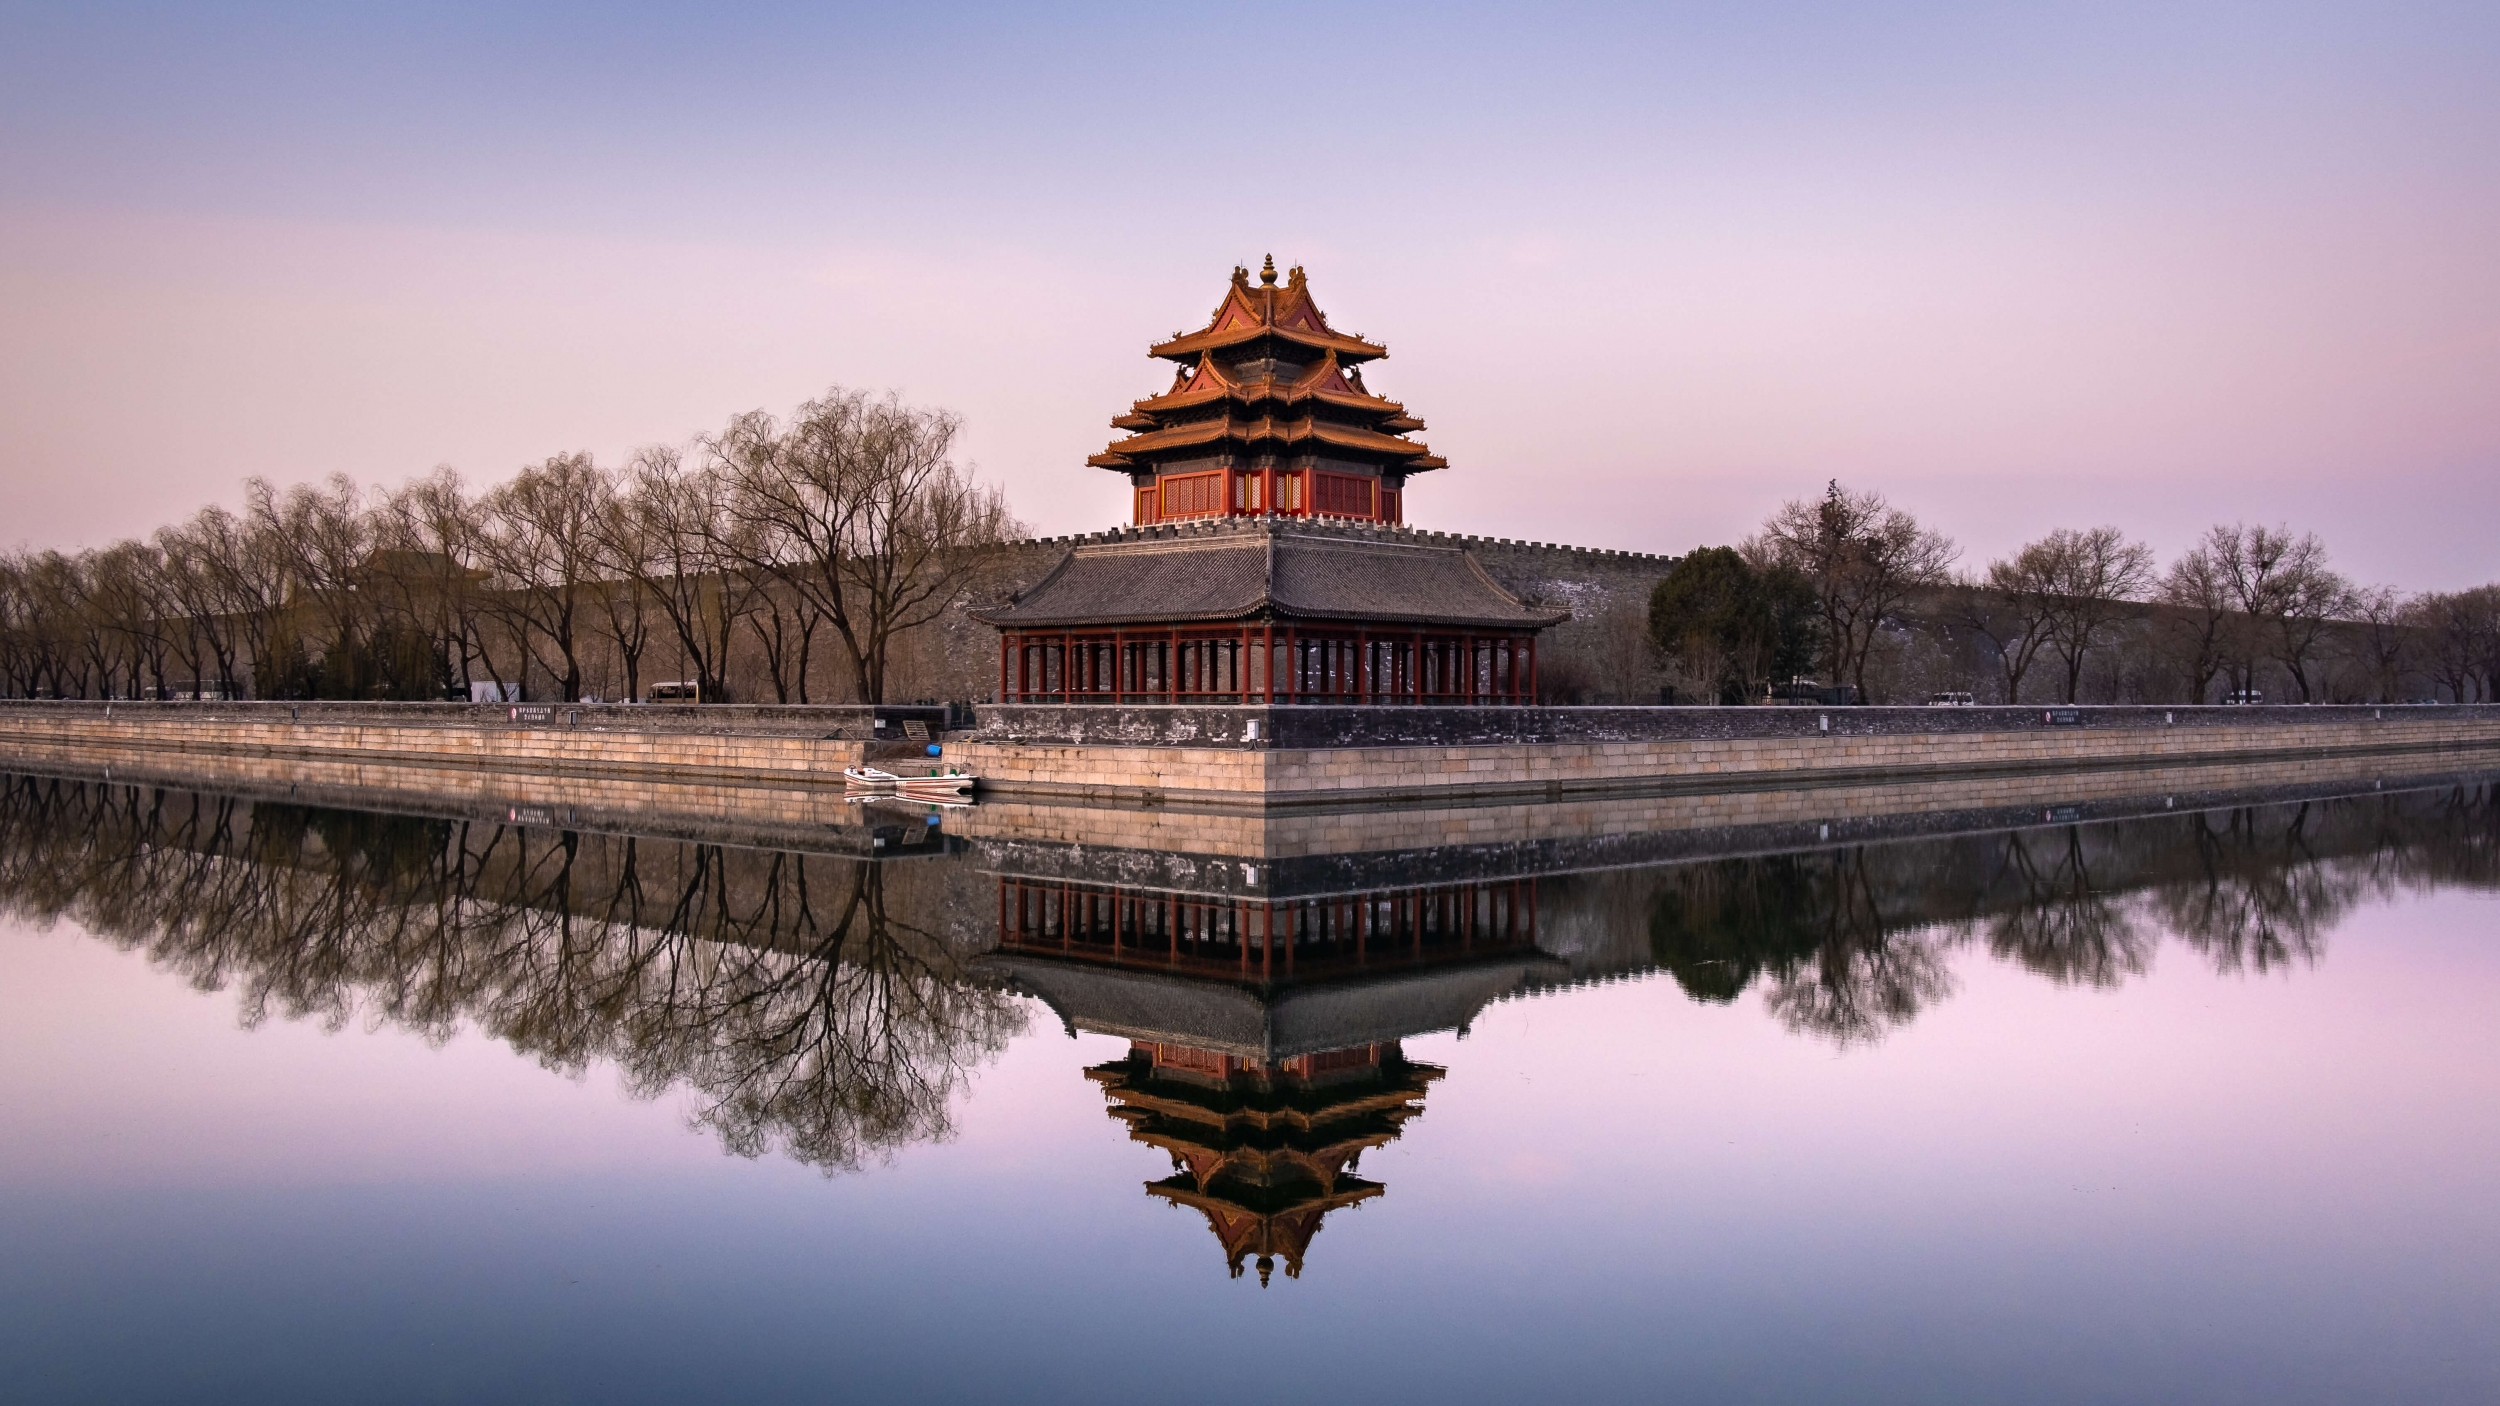 Travel in China, China travel, China trips, Forbidden City, Beijing, Sunrise, reflection, best spot for photography in Beijing, Photo Tour in China, China photo tours